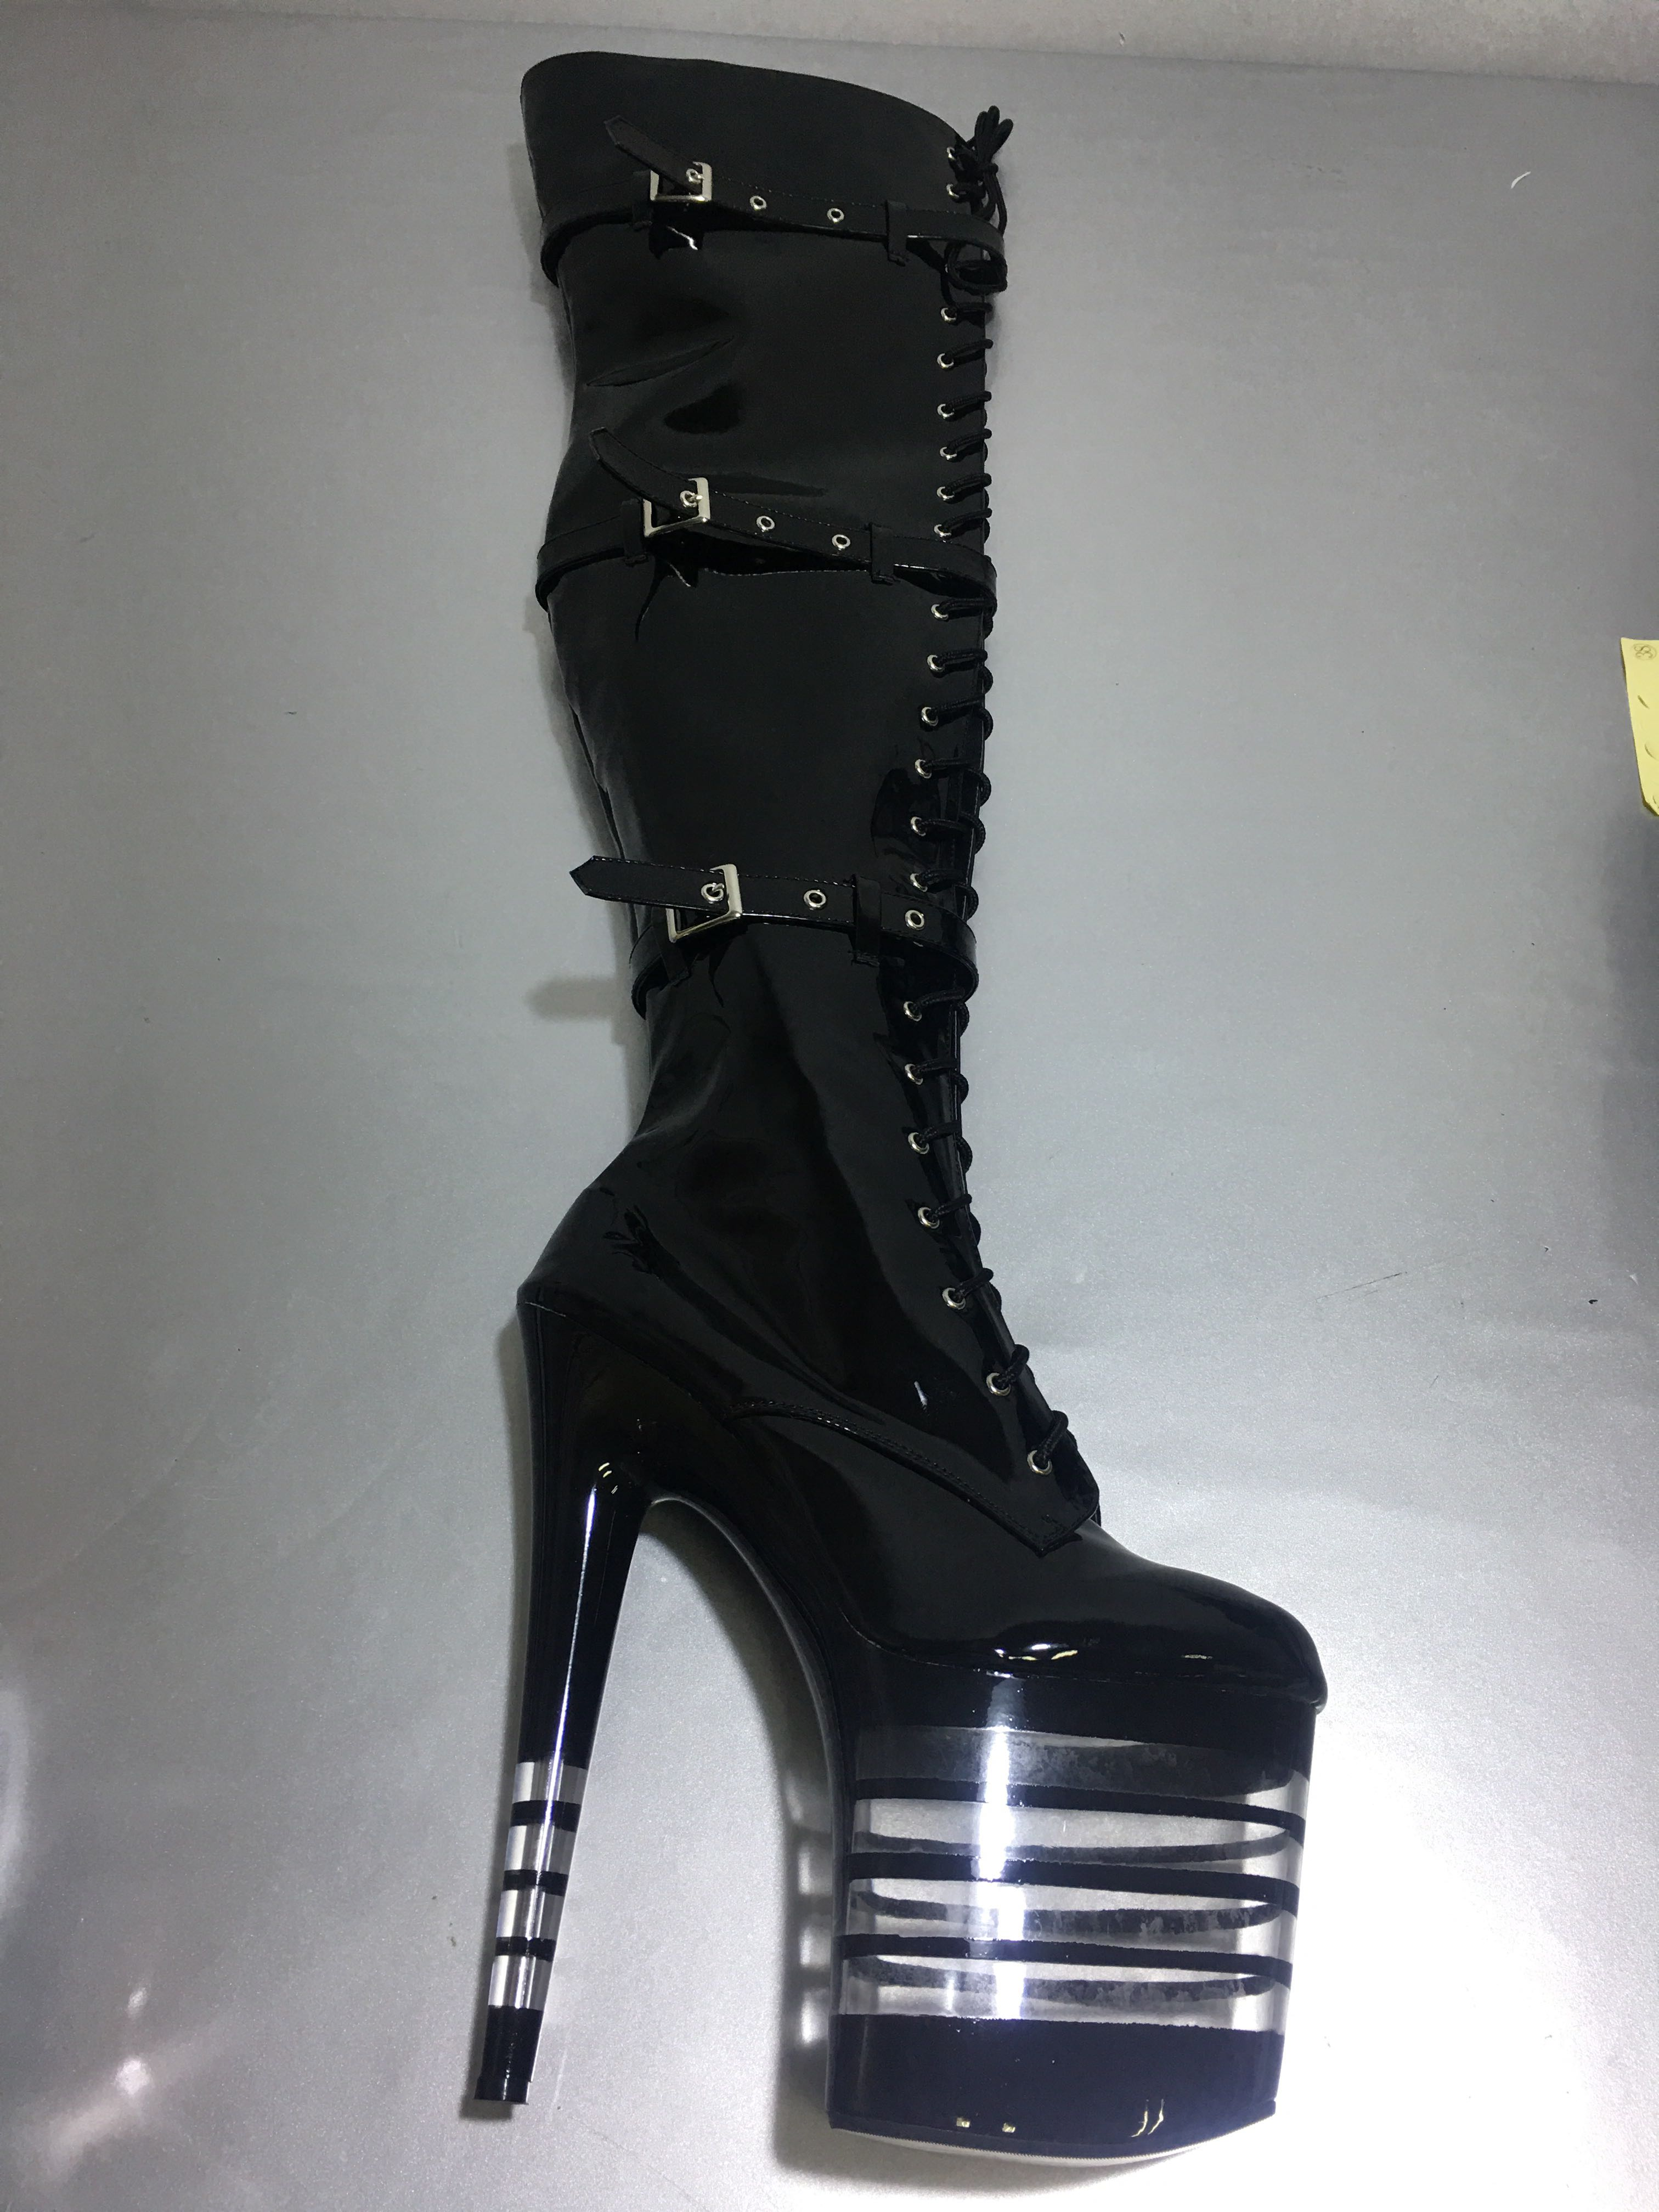 Sexy Thigh High Boots 8 Inch High Heels Fashion Platform Womens Over The Knee Boots 20cm High-Heeled Boots Pipe Dance Boots